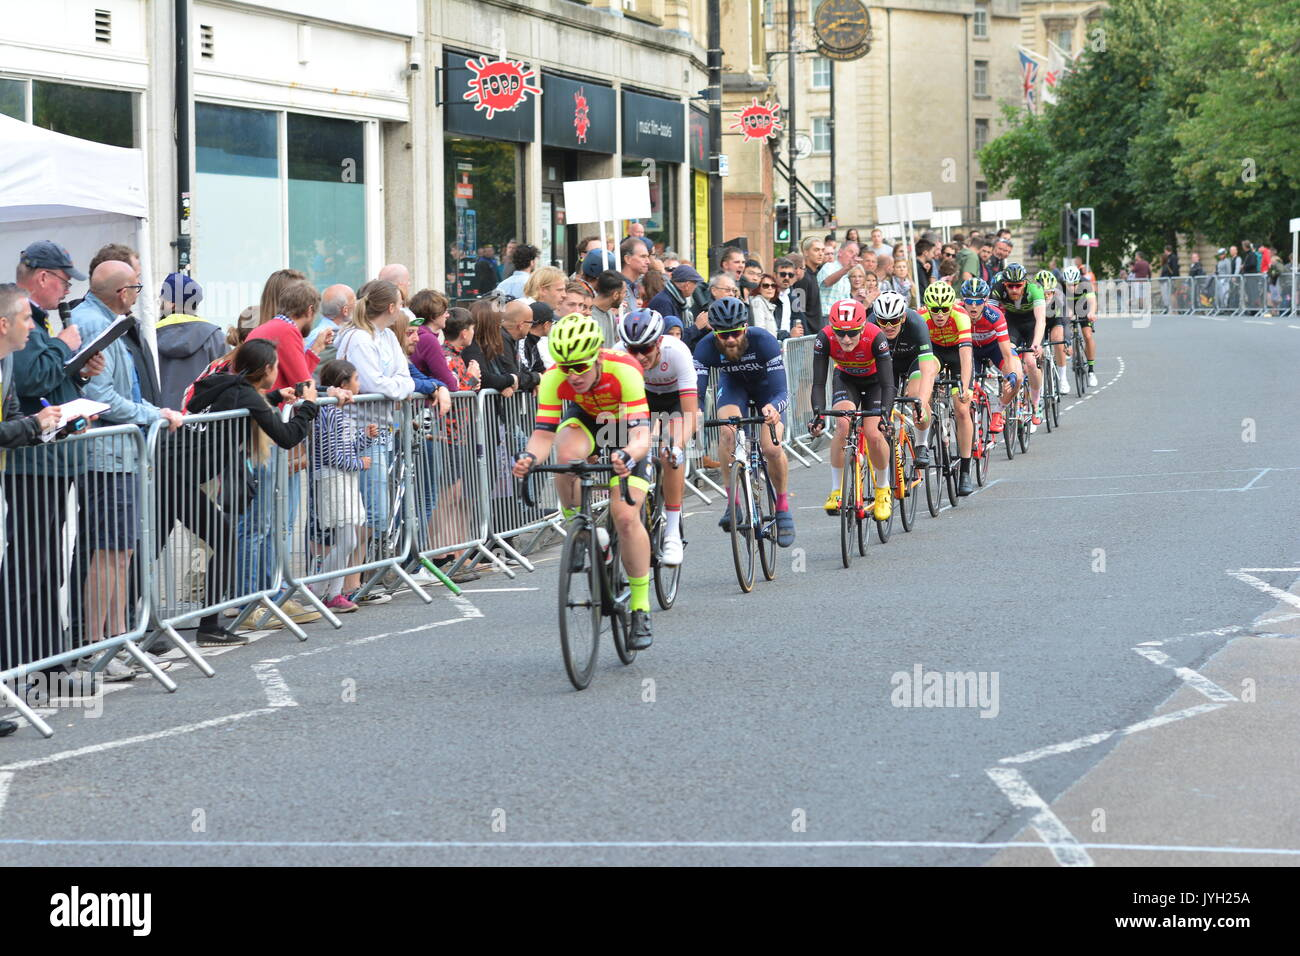 Bristol, UK. 19th Aug, 2017. Caution: EDITORIAL USE ONLY. Bristol GP cycle race around the streets of Bristol. Images Stock Photo